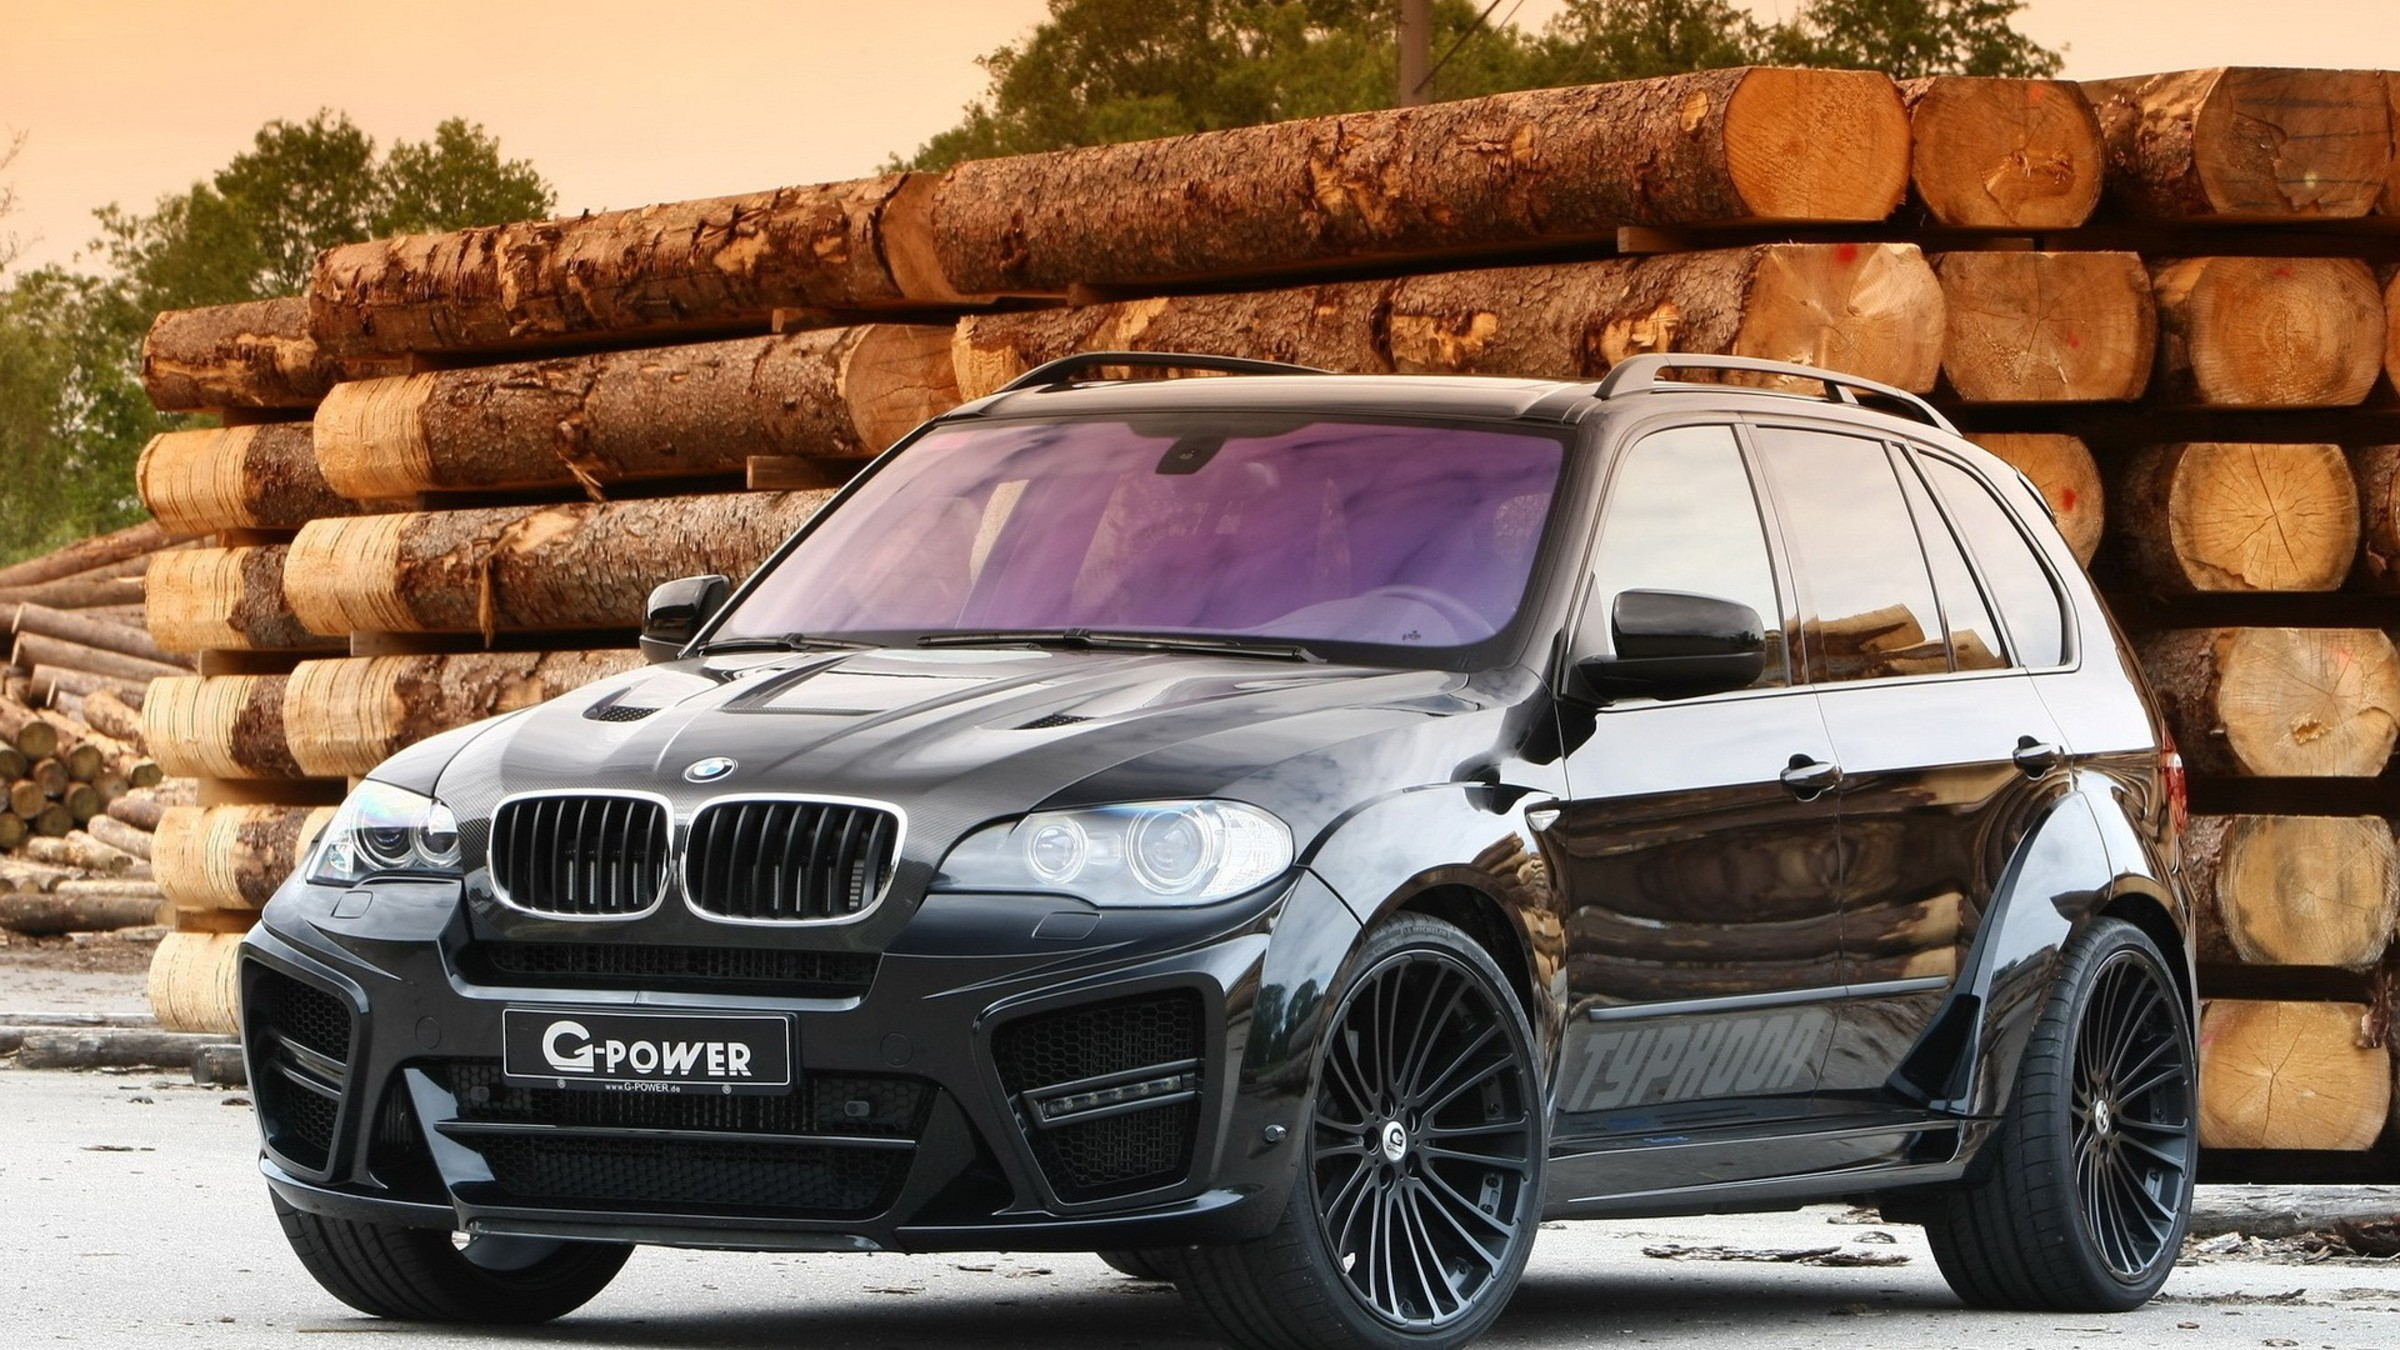 Bmw cars auto x5 wallpaper allwallpaper 3226 pc en wallpaper resolutions voltagebd Image collections